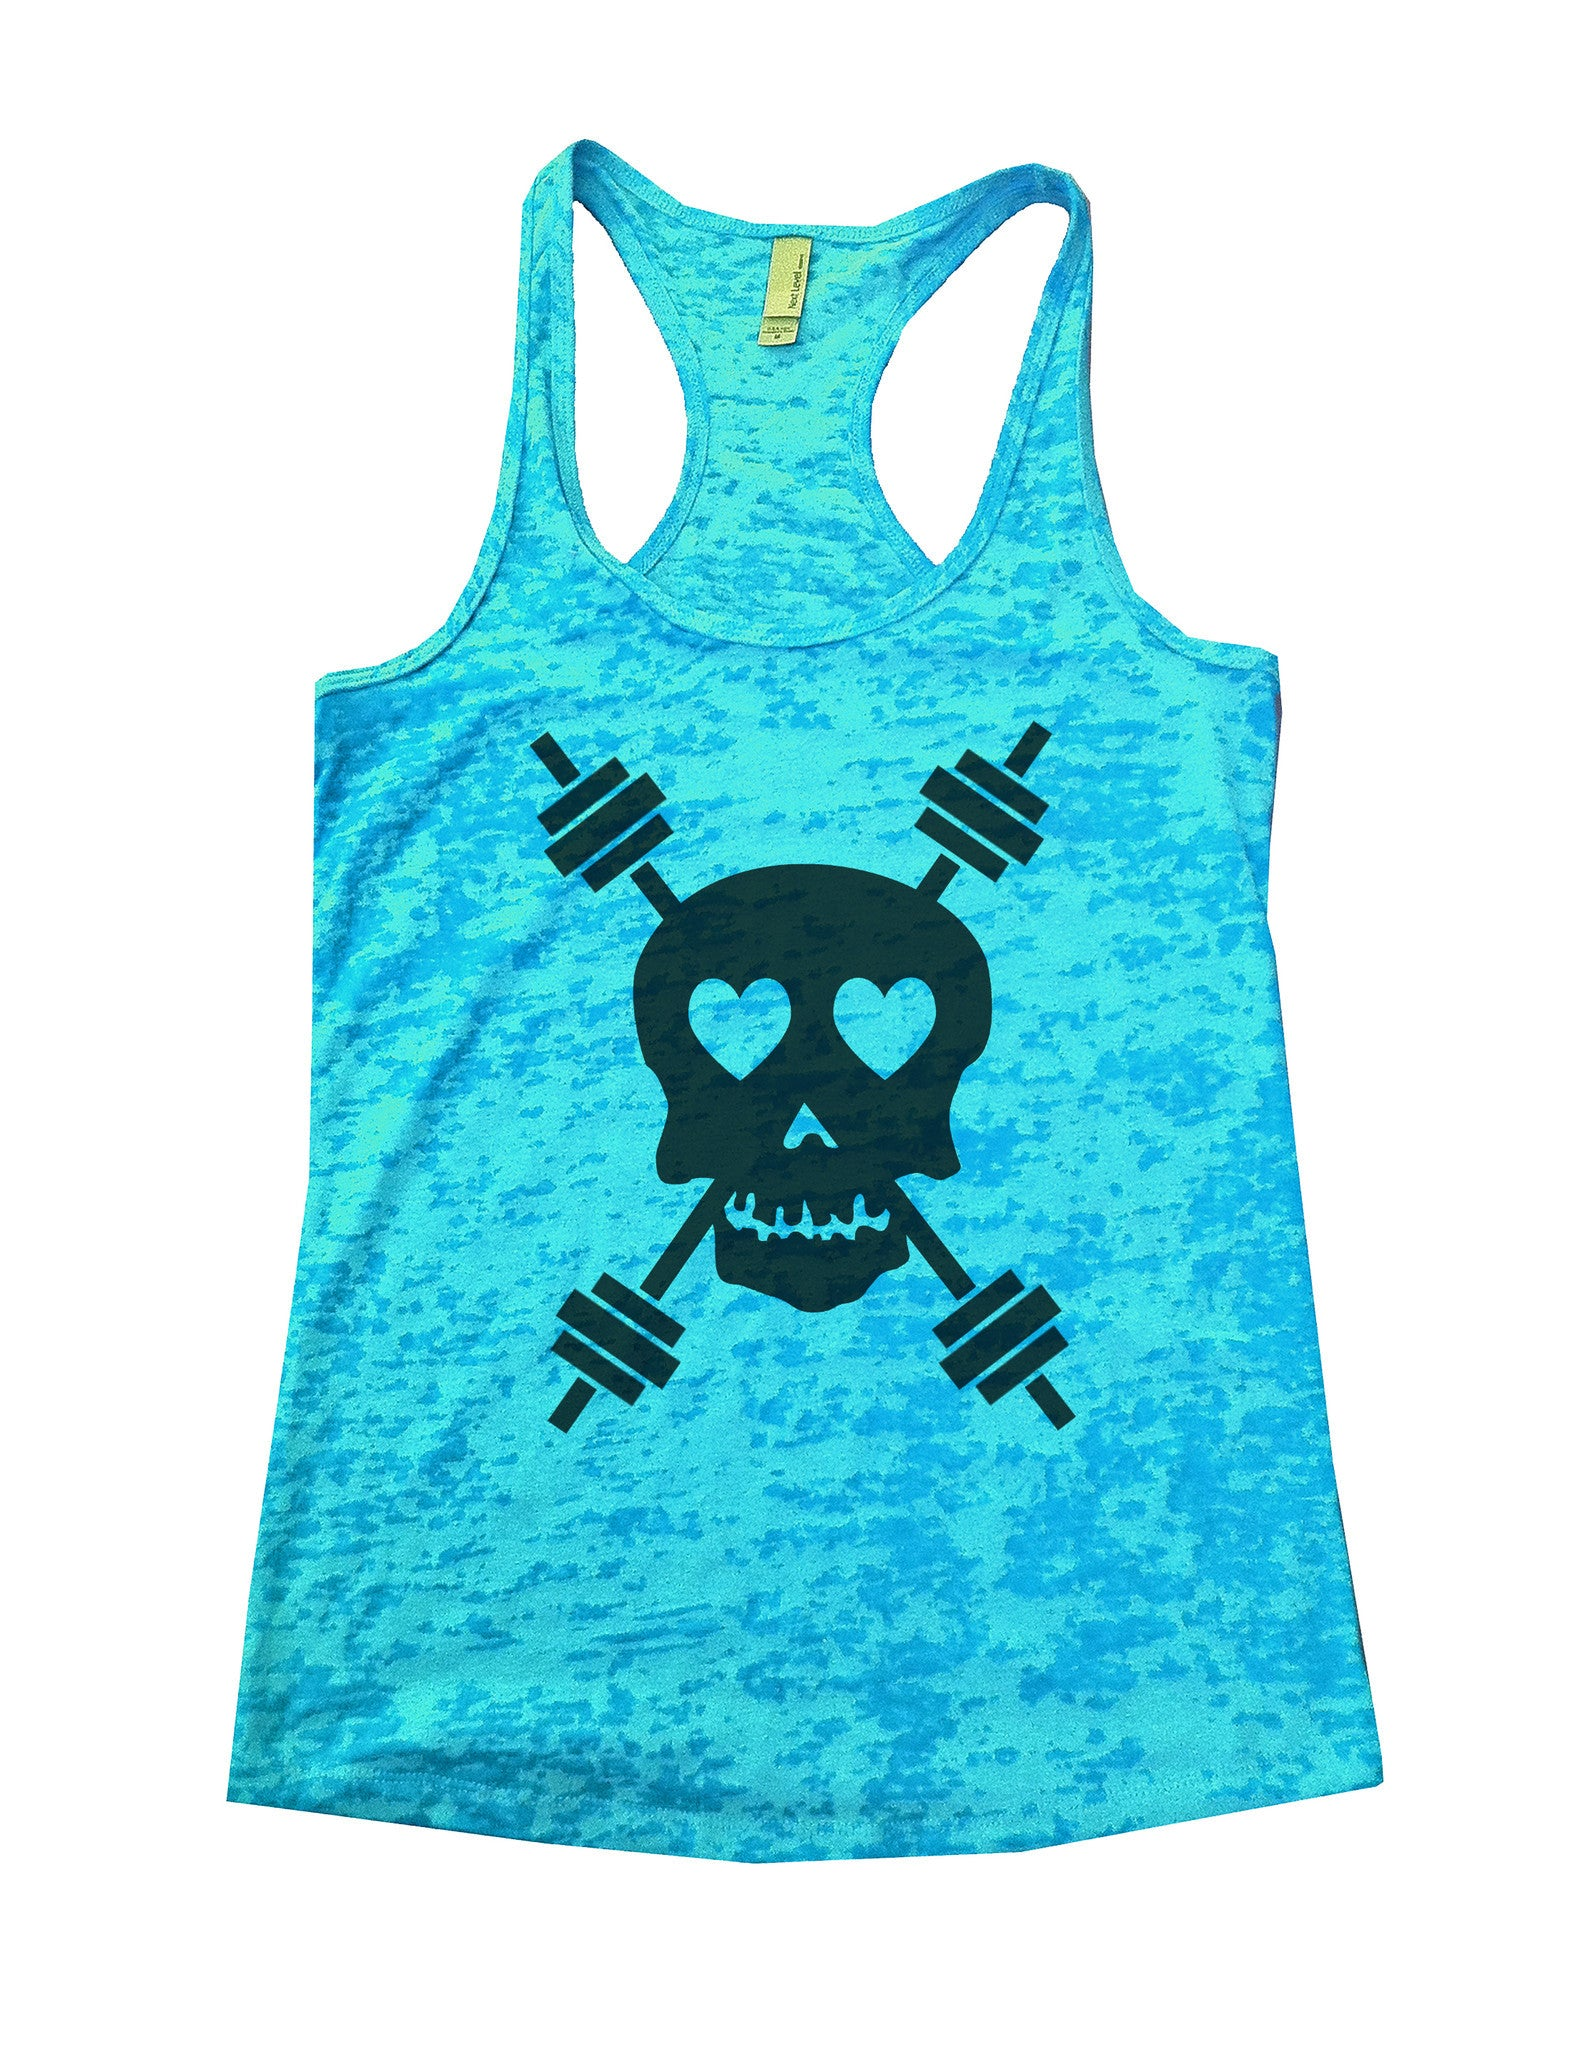 Skull And Weight Bars Burnout Tank Top By BurnoutTankTops.com - 653 - Funny Shirts Tank Tops Burnouts and Triblends  - 4